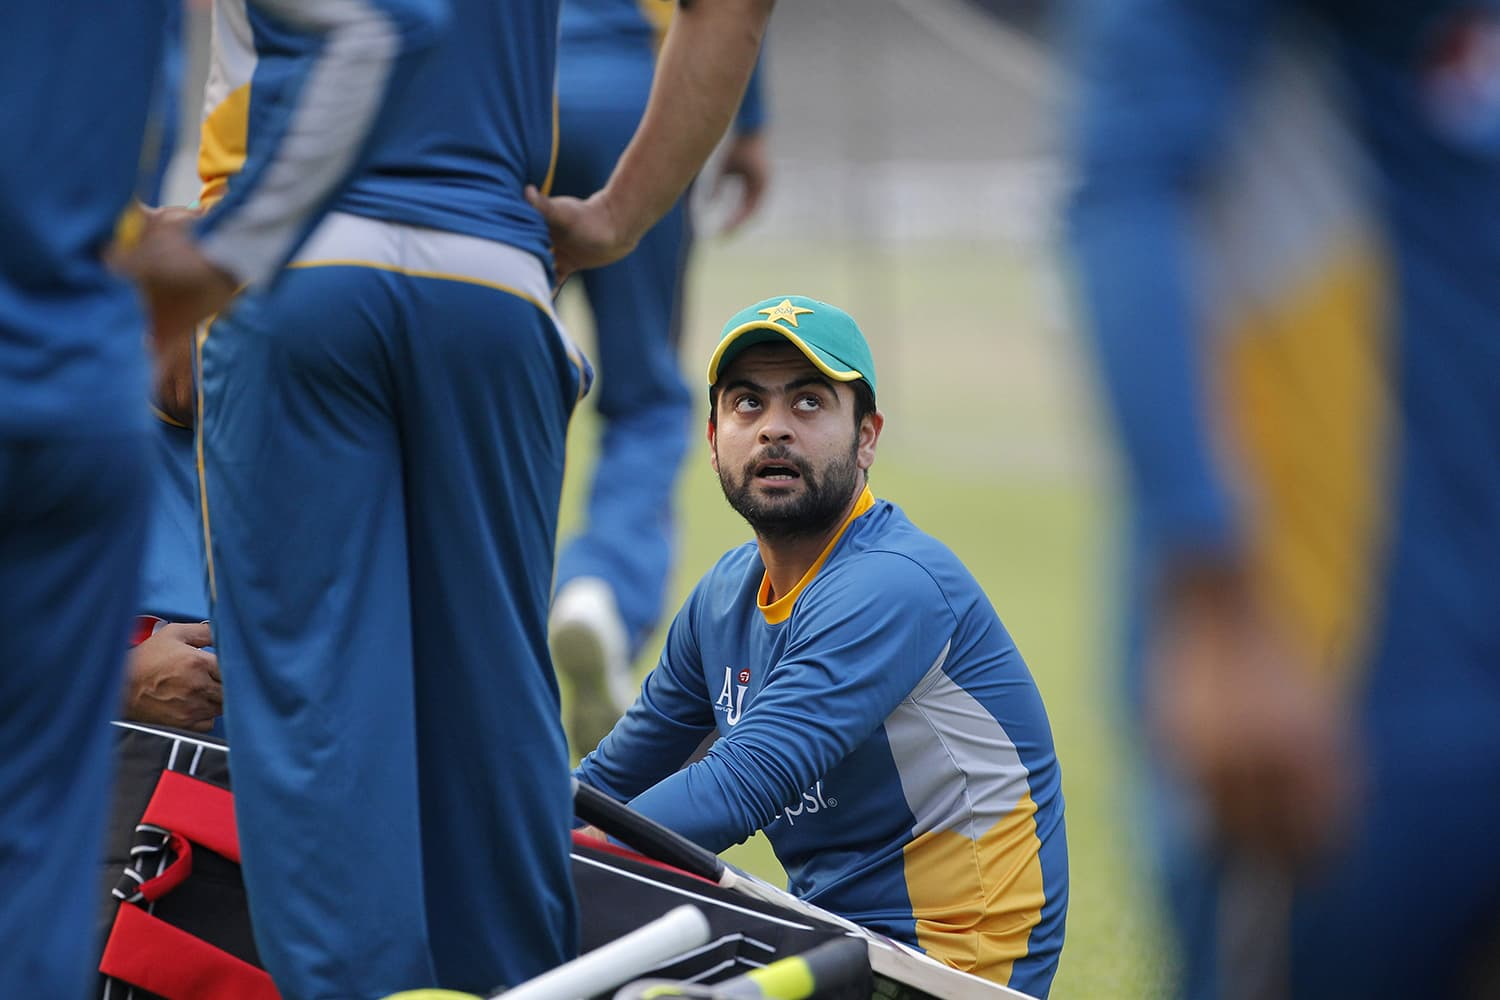 Pakistan's Ahmed Shehzad is seen during a training session in Kolkata. — AP